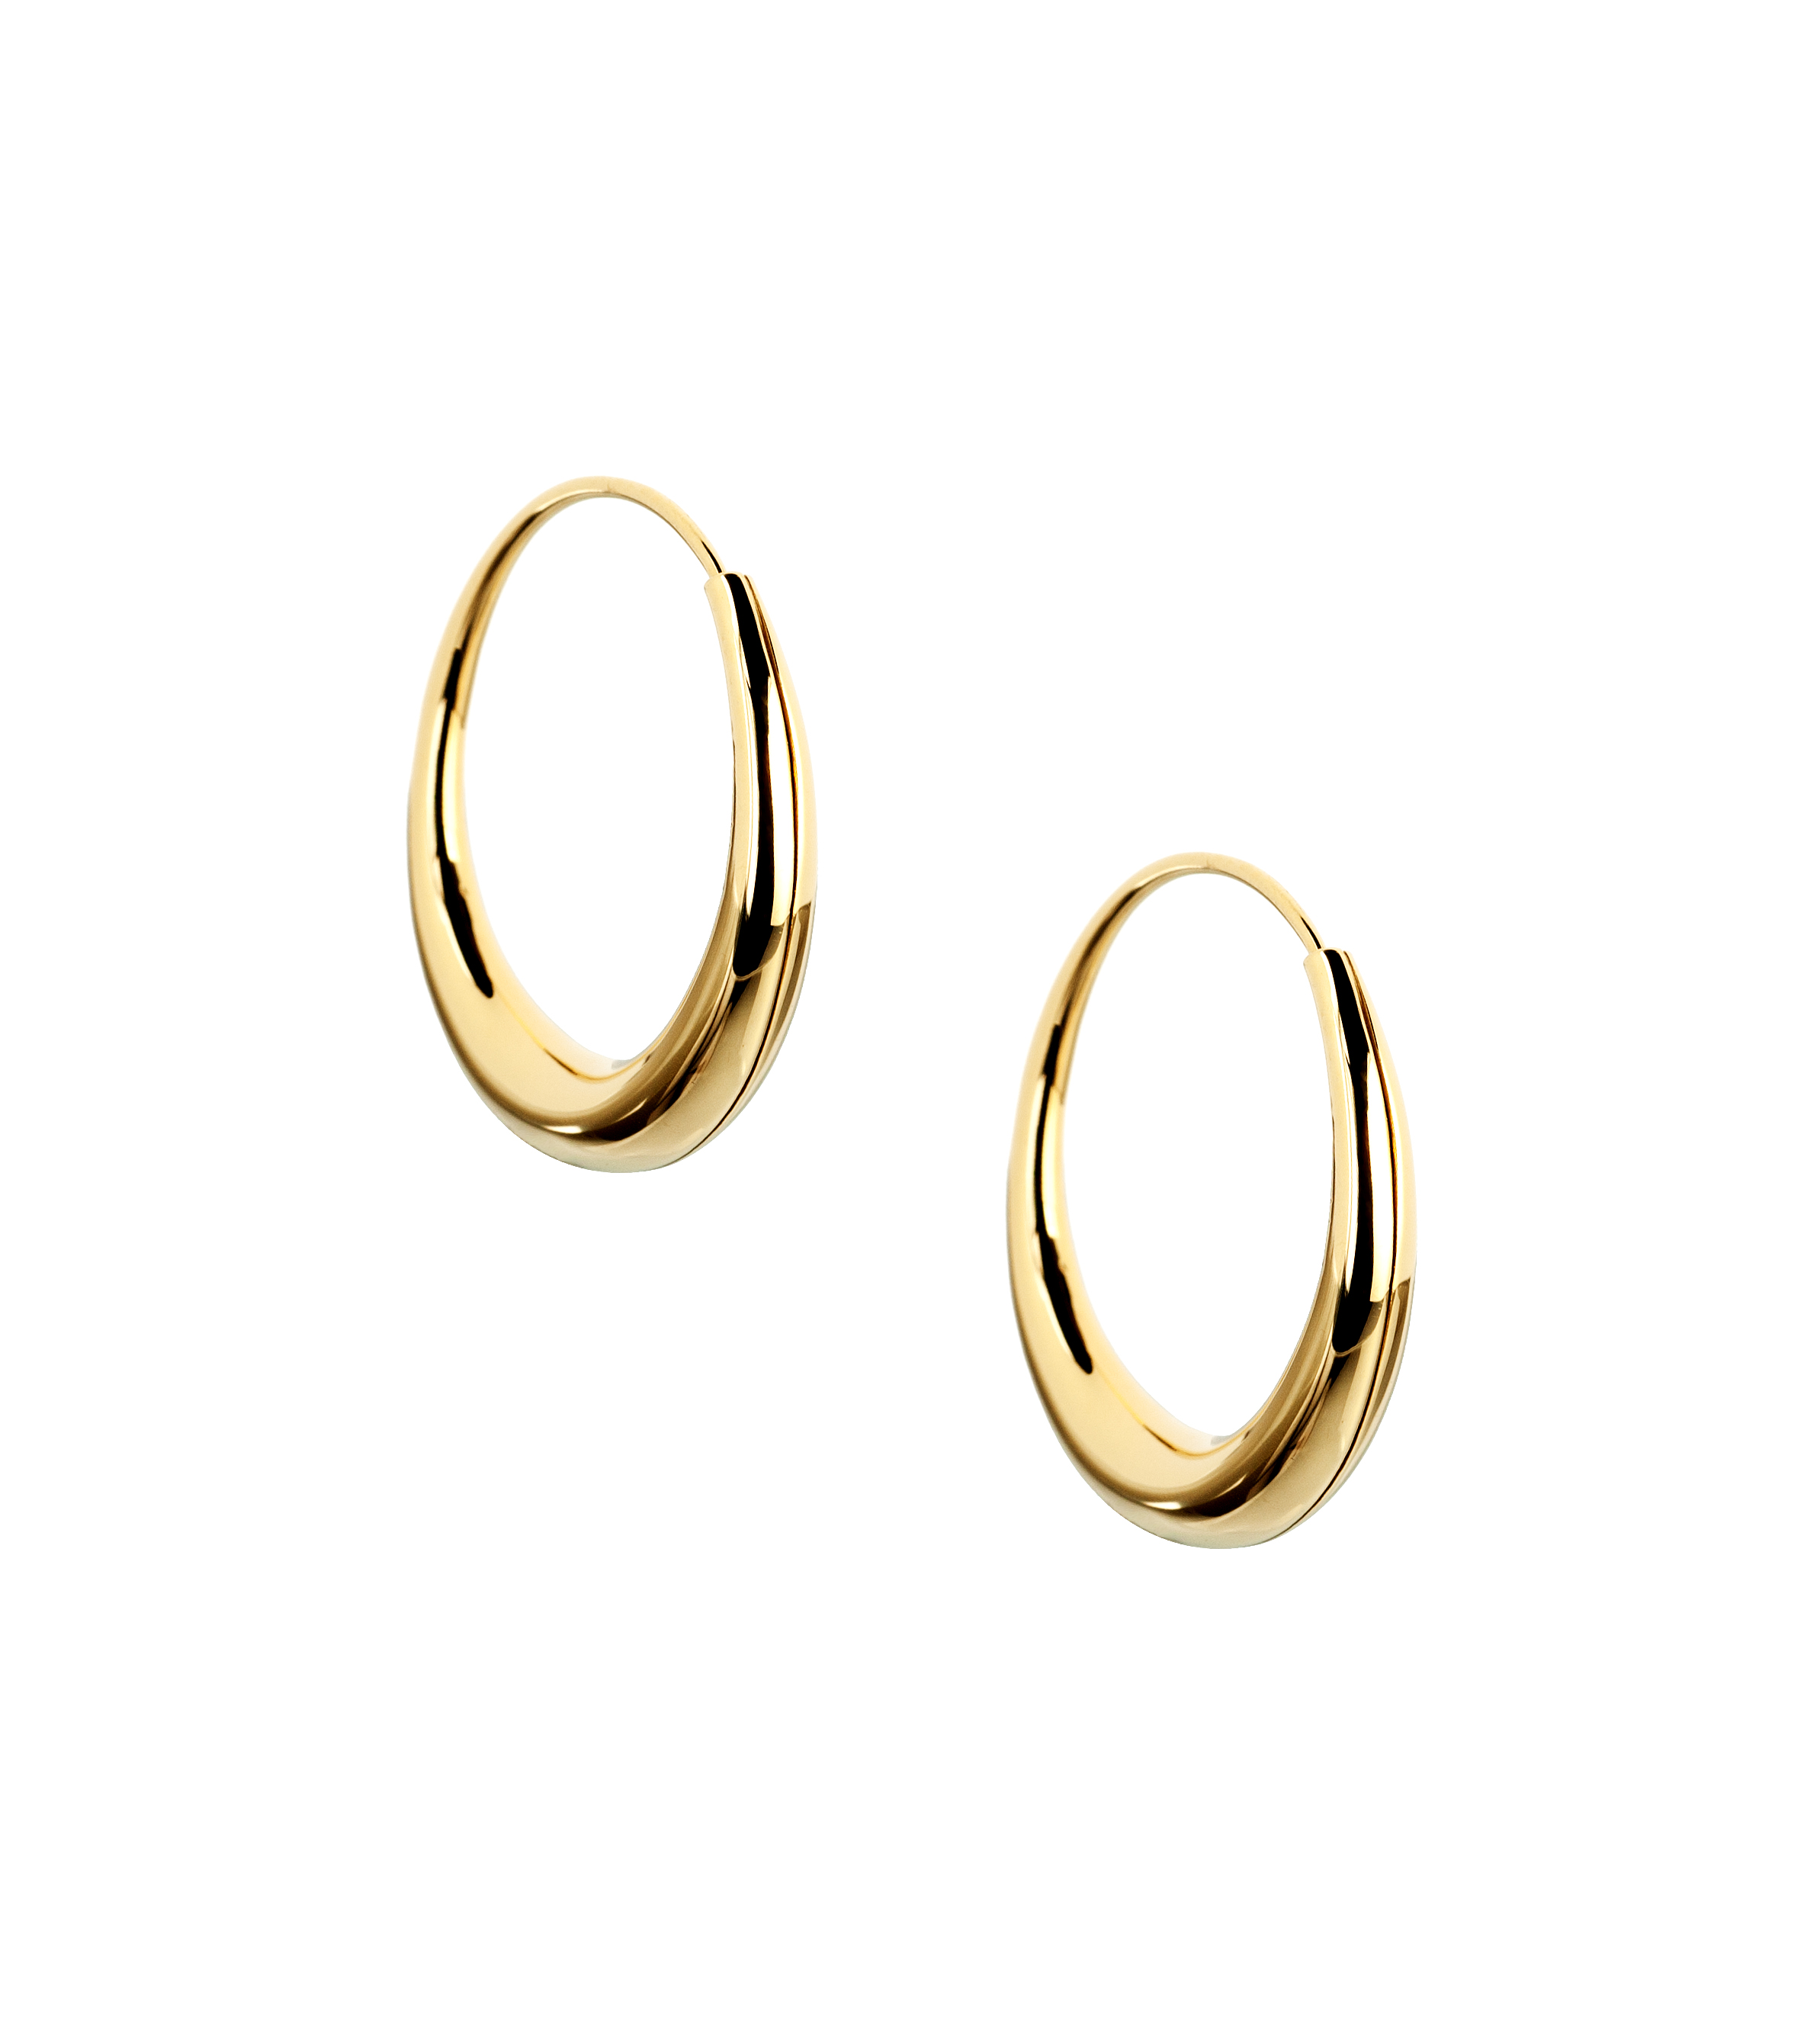 Mini round hoop earrings